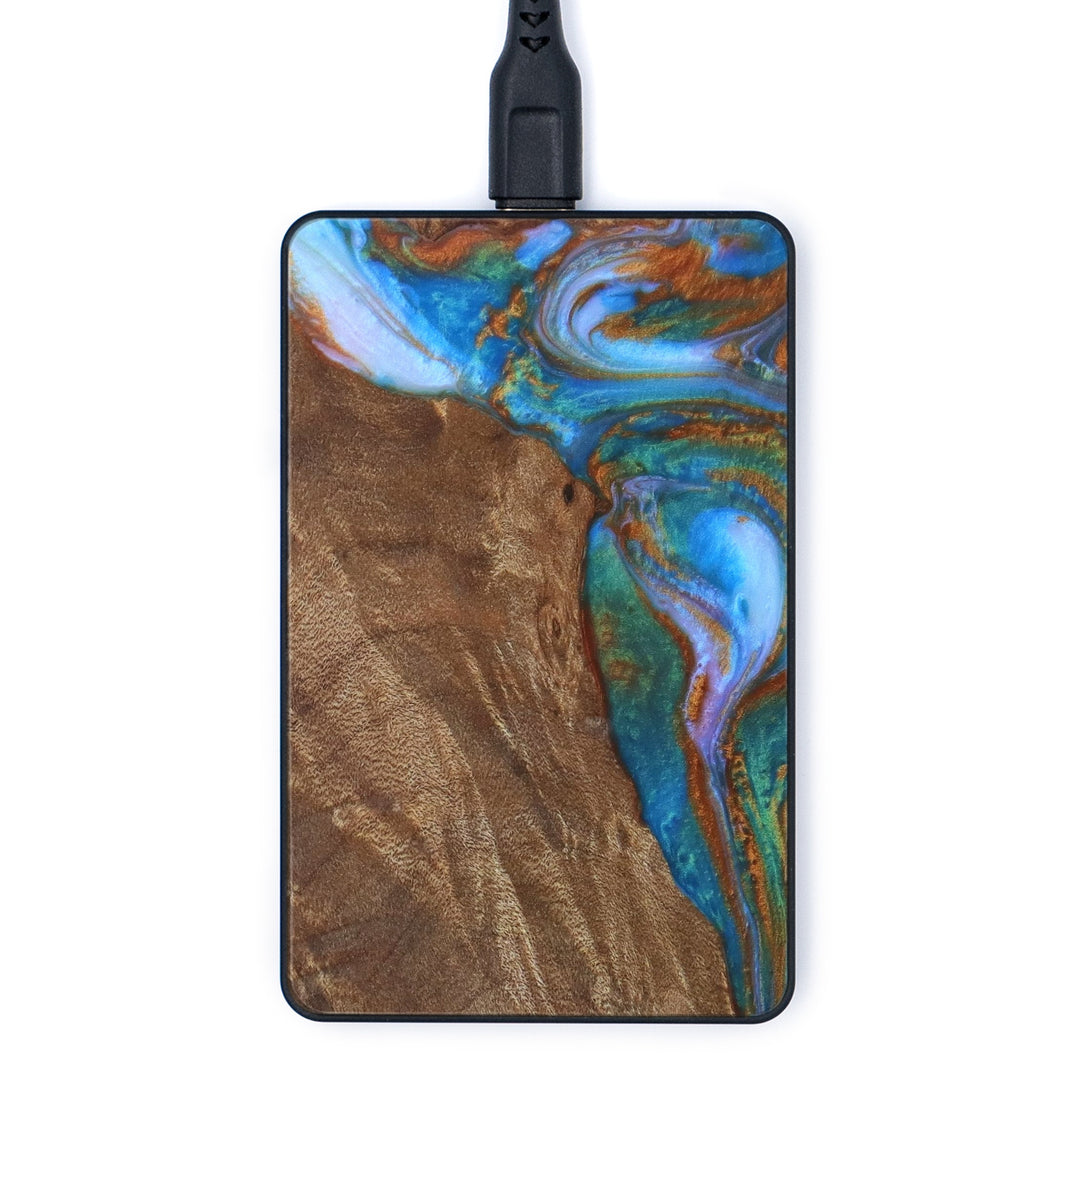 Thin Wireless Charger - Marj (Teal & Gold, 335906)